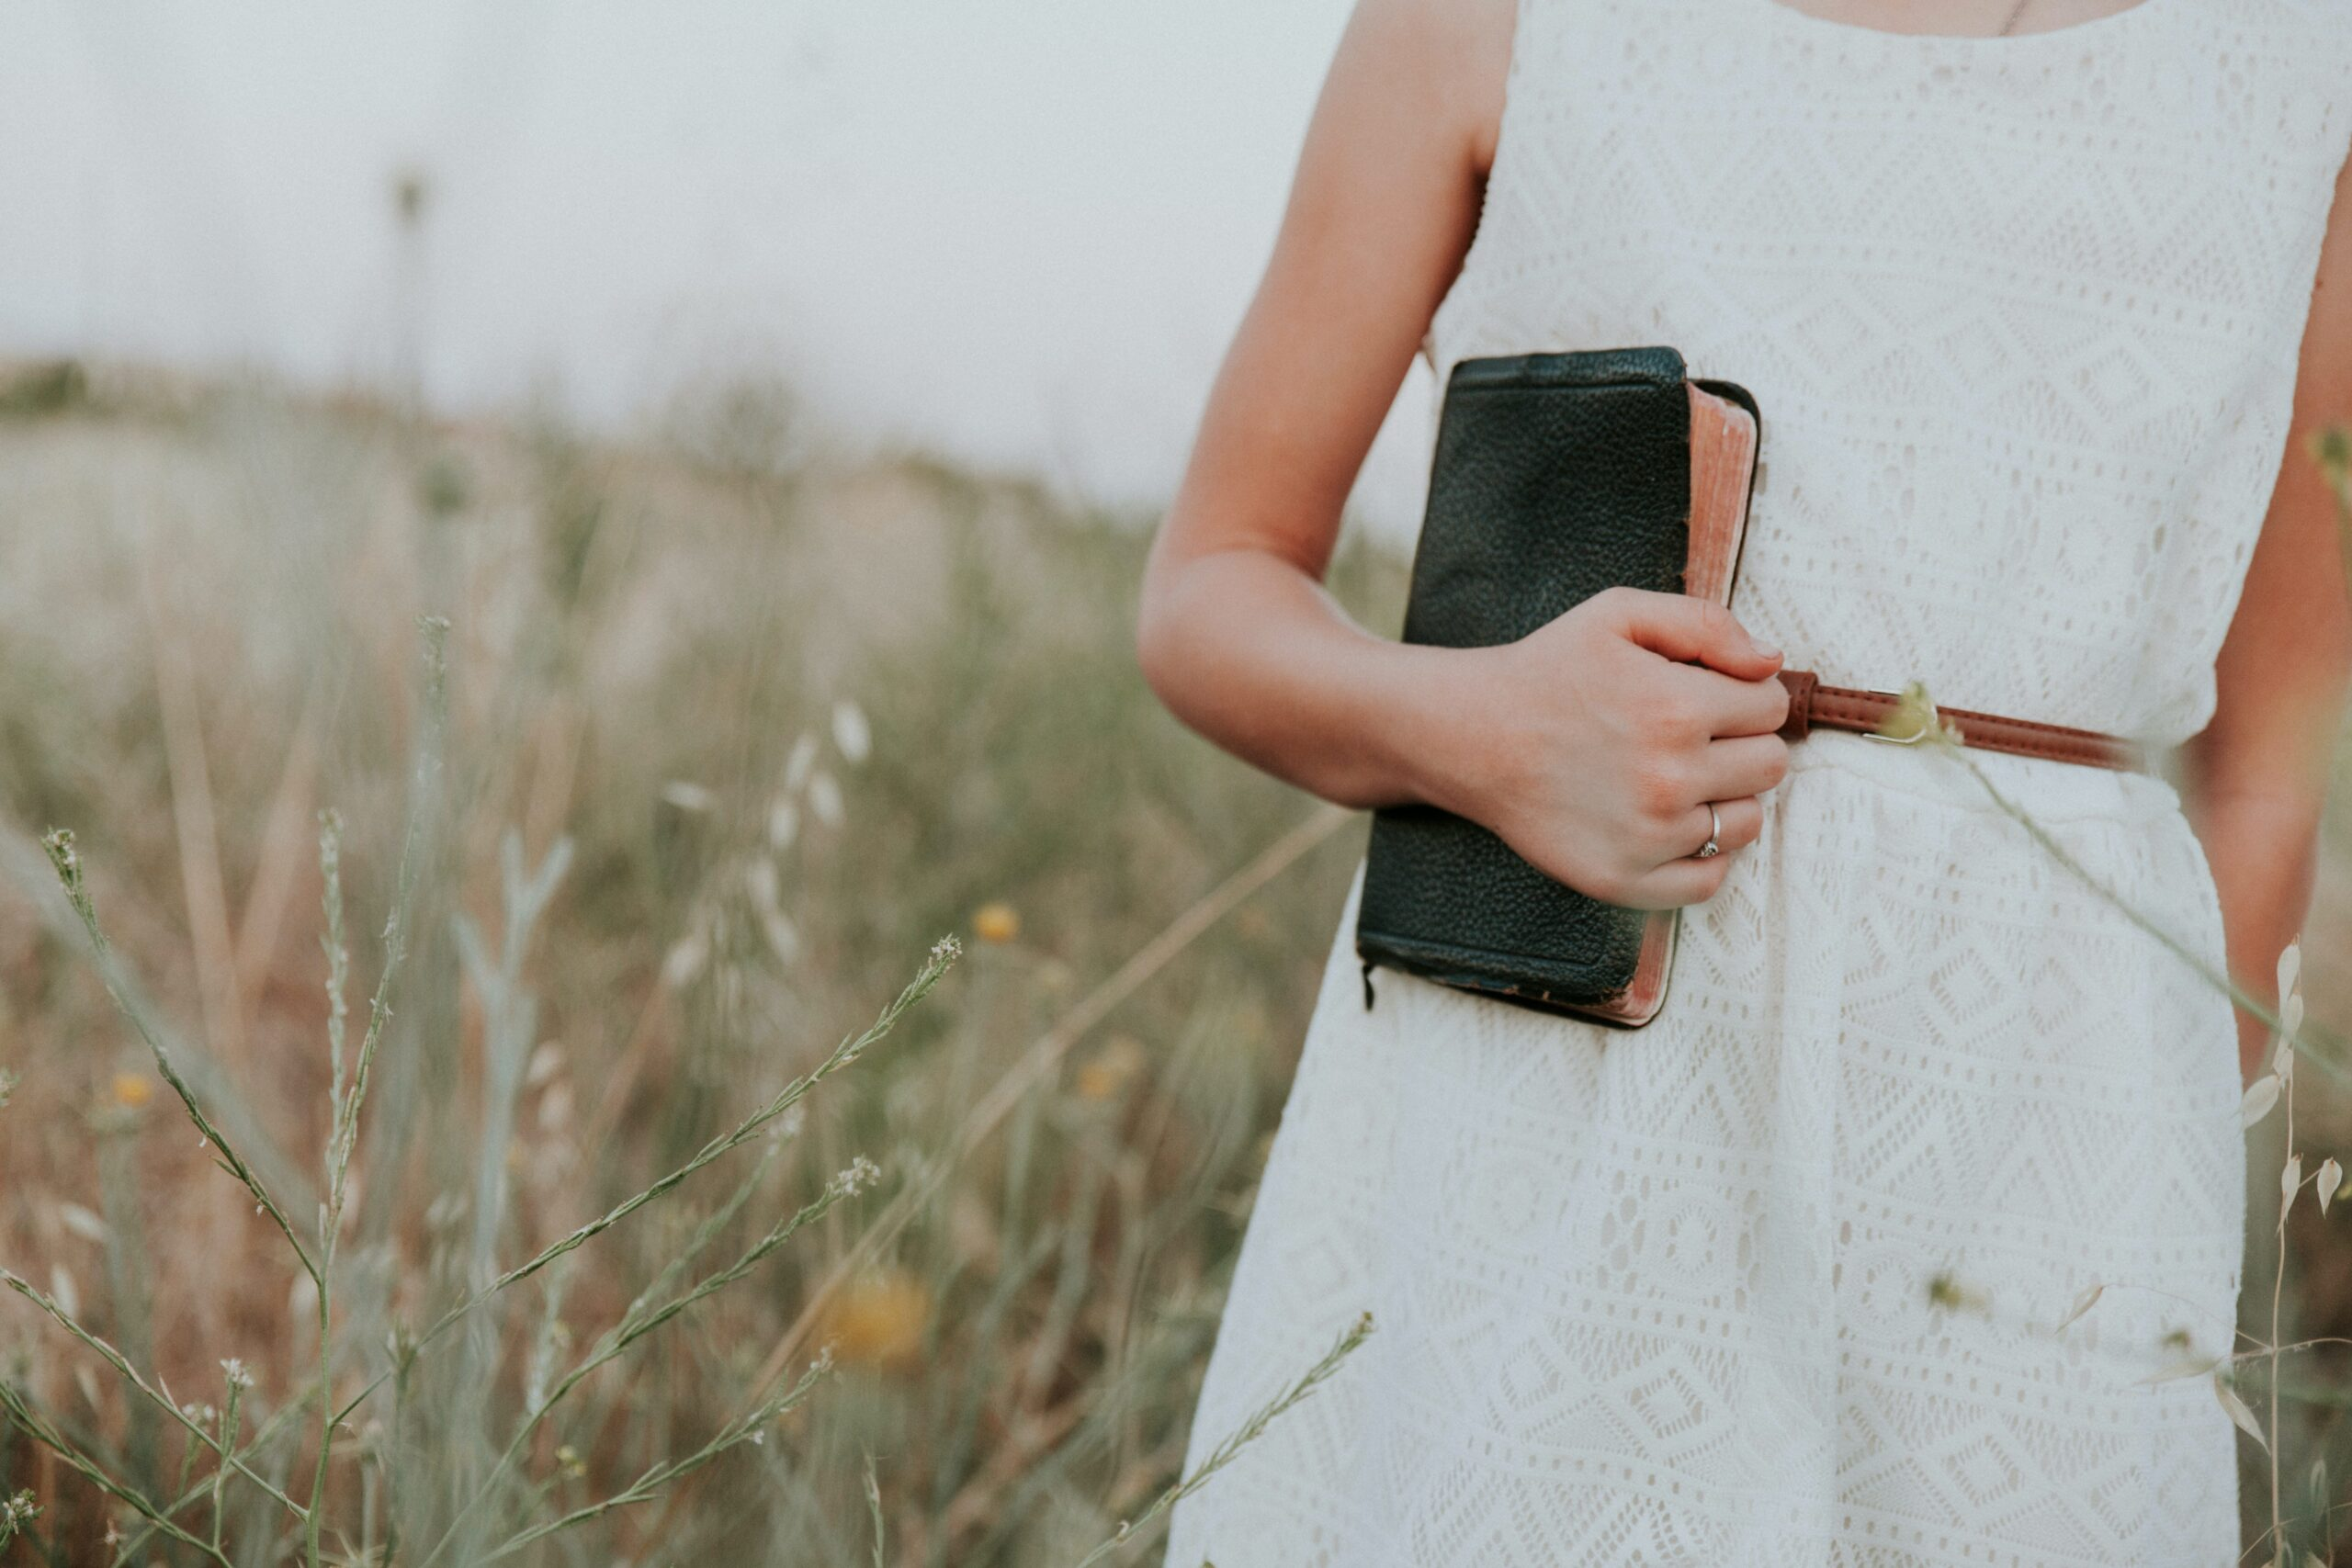 is homemaking a ministry? what does the Bible say about ministry and homemaking?